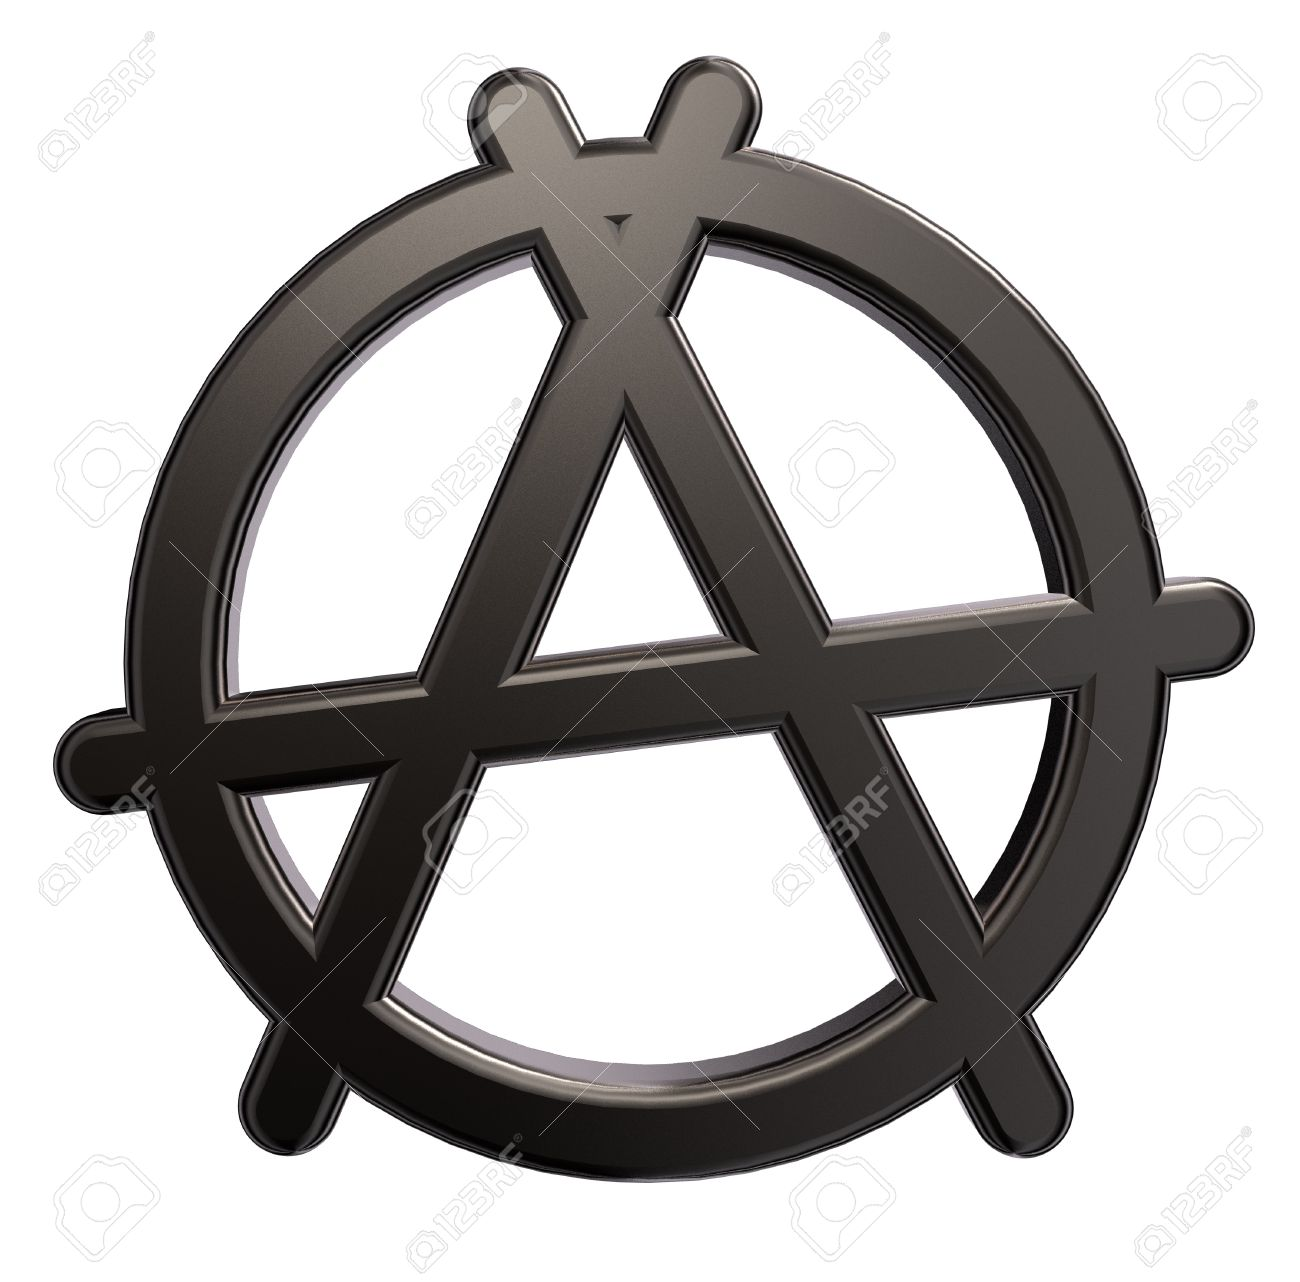 Metal anarchy symbol on white background 3d illustration stock metal anarchy symbol on white background 3d illustration stock illustration 15414543 buycottarizona